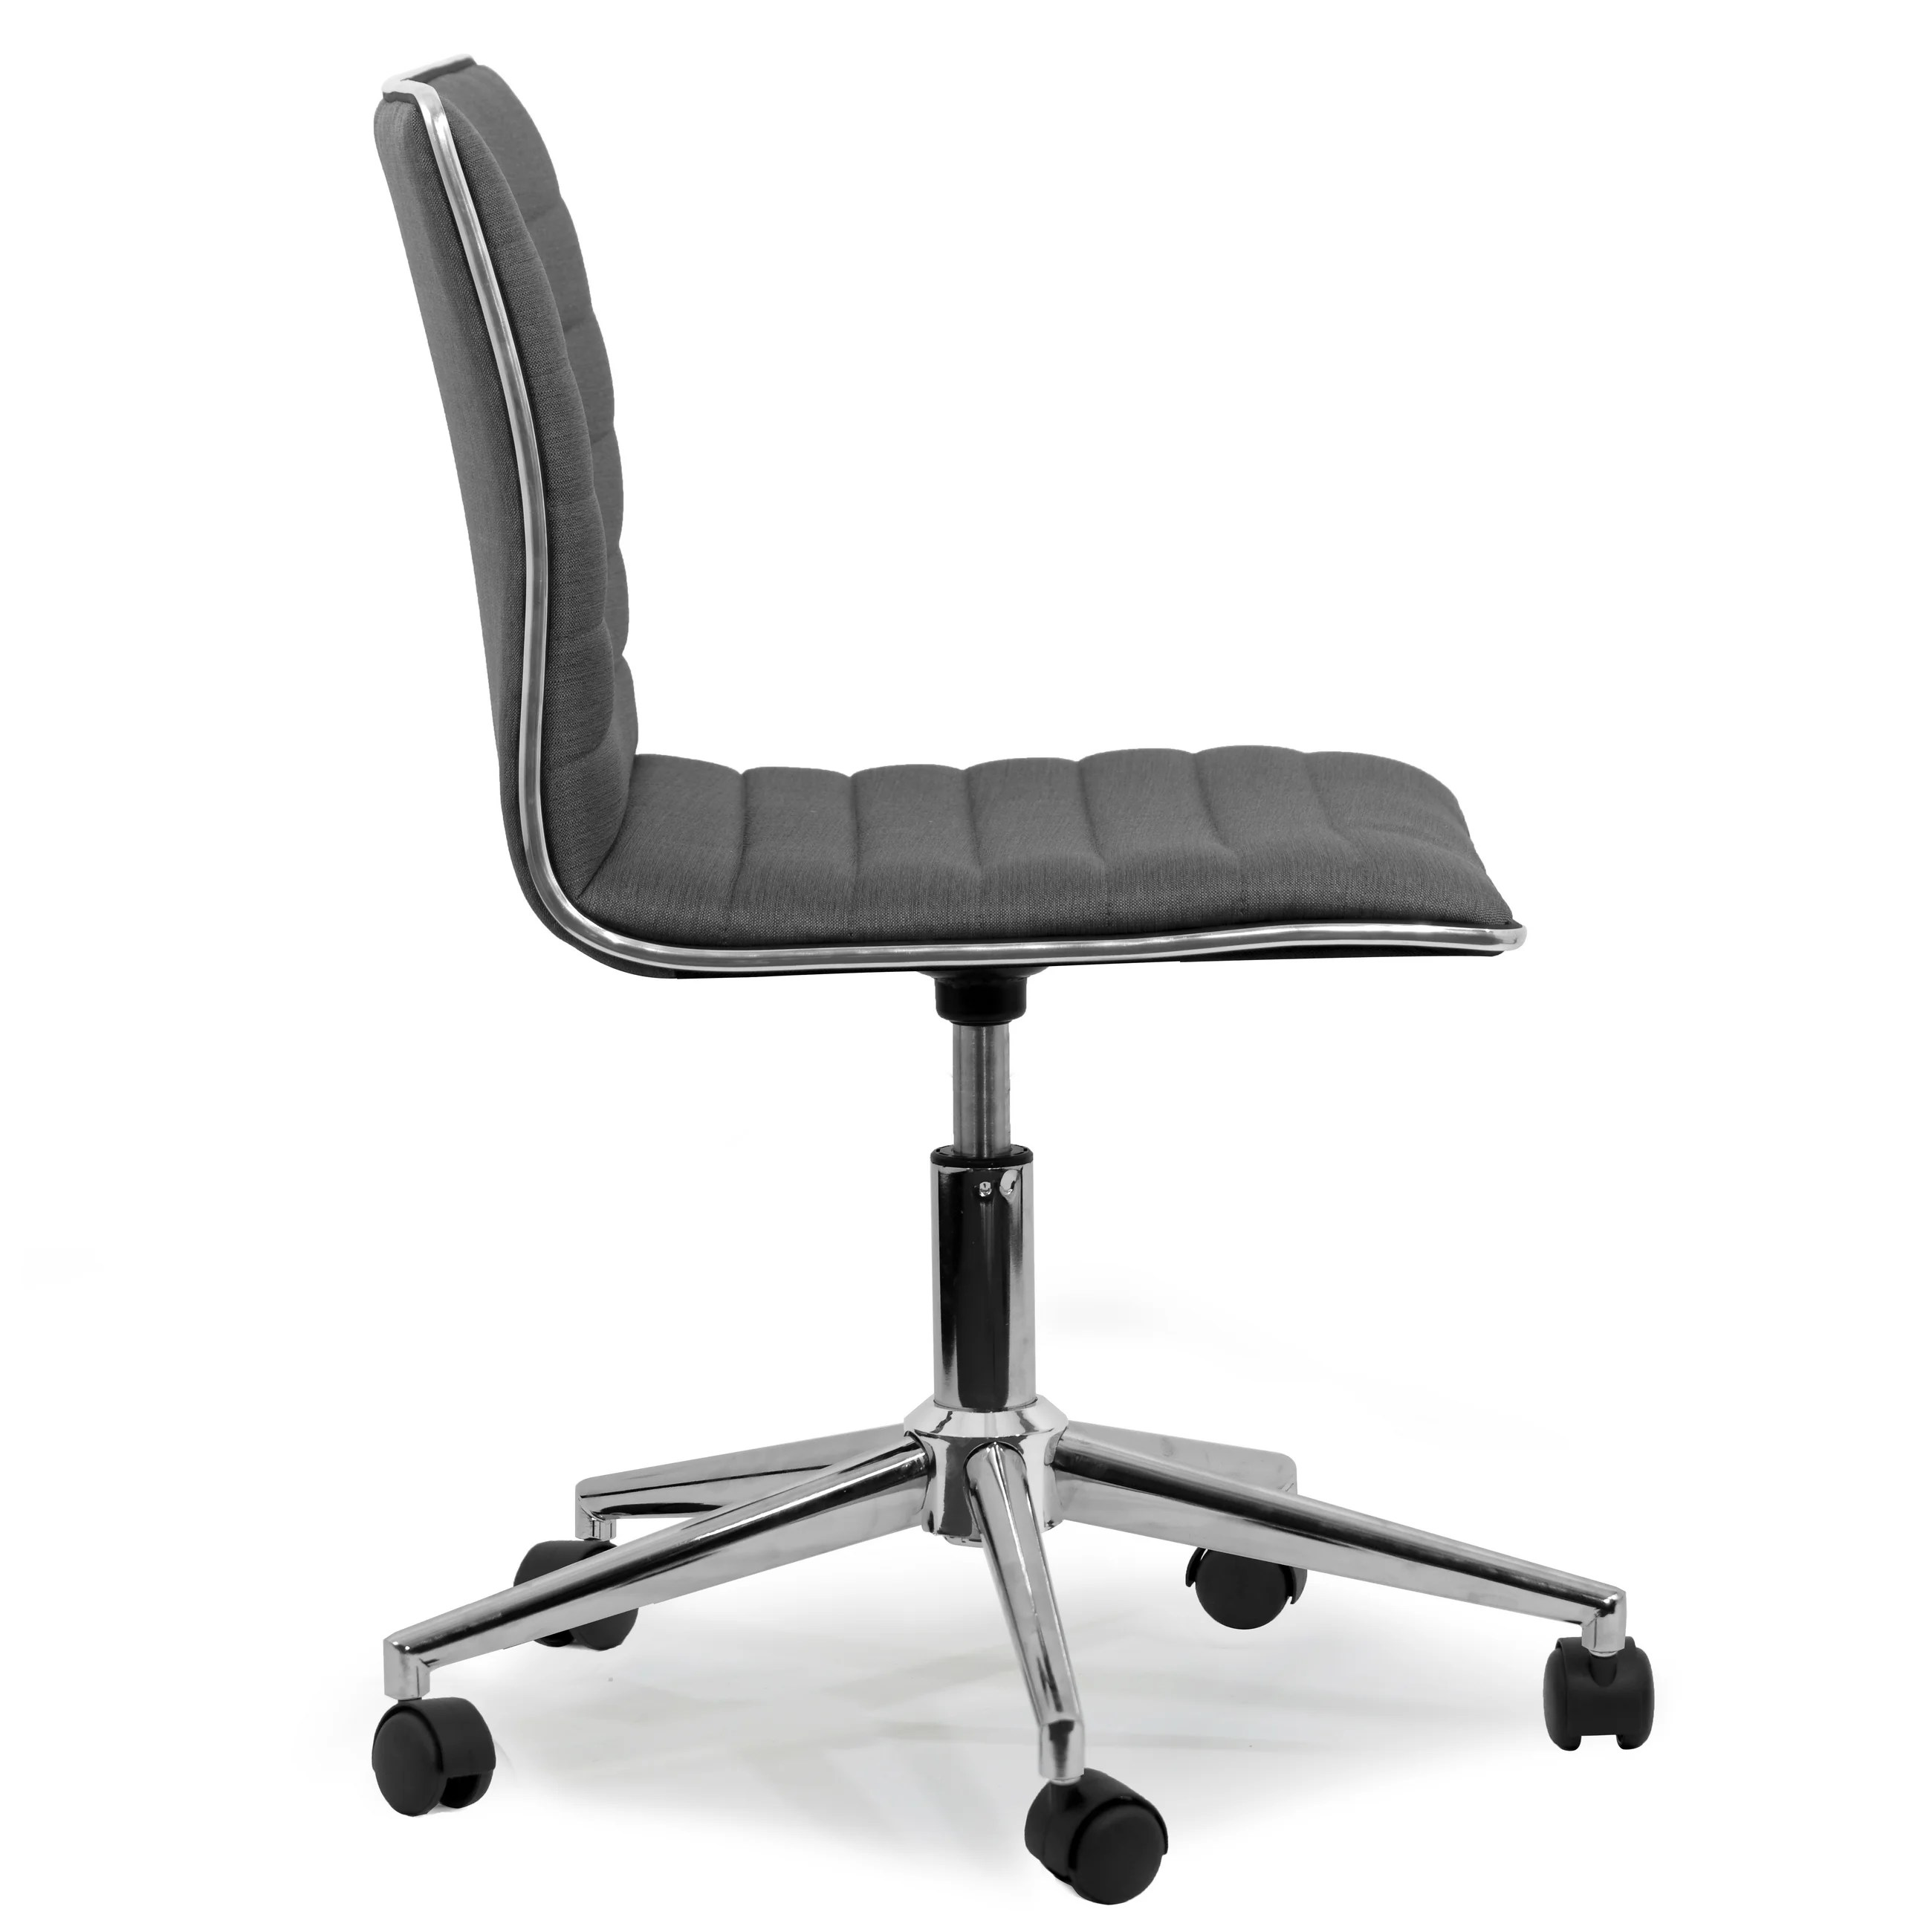 swivel office chair with wheels tufted upholstered dining chairs shop aiko grey fabric chrome metal on sale free shipping today overstock com 12816273